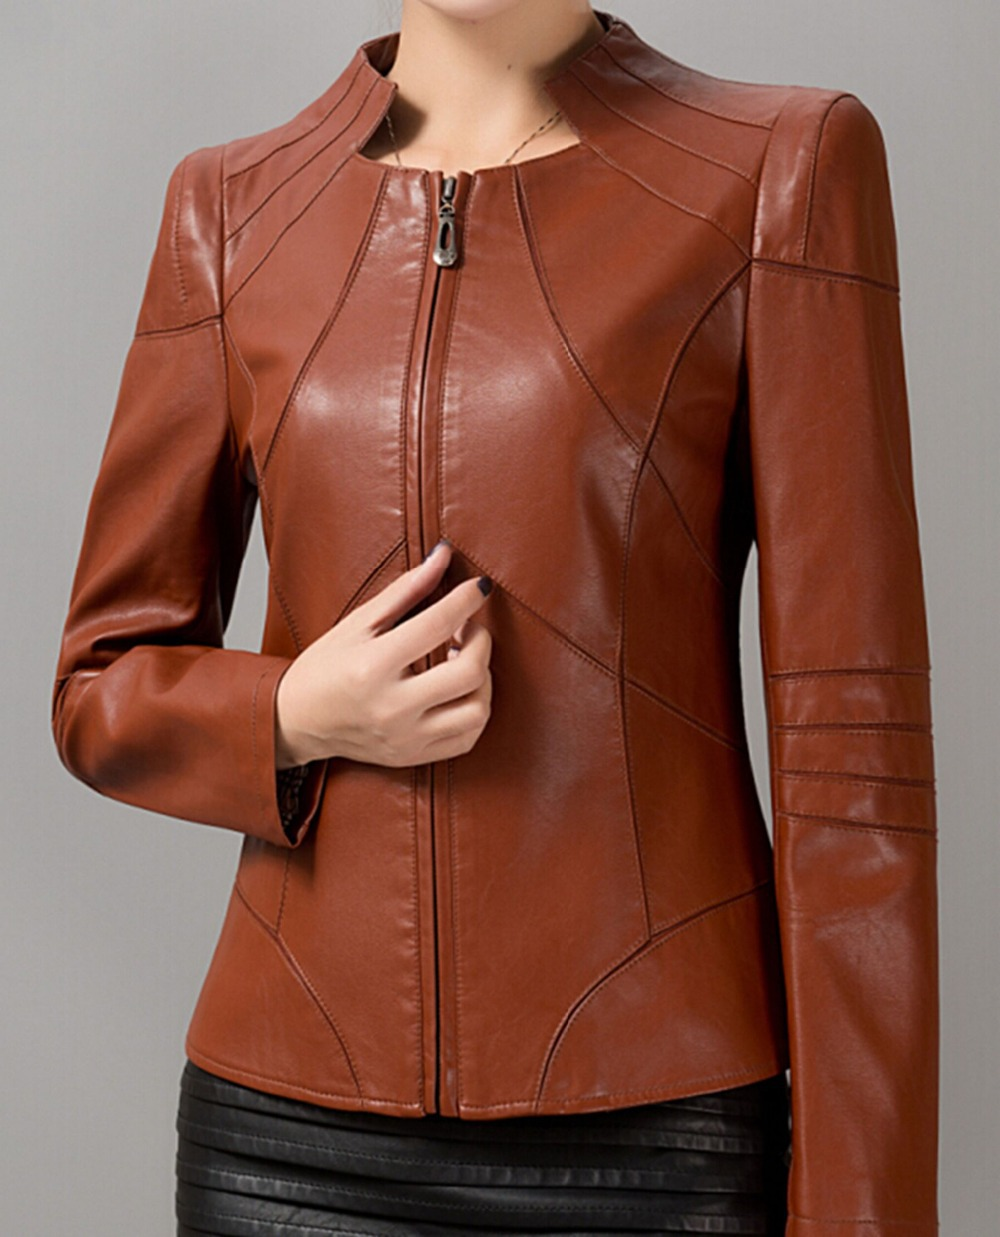 Shop our Collection of Women's Leather Jackets at dvlnpxiuf.ga for the Latest Designer Brands & Styles. FREE SHIPPING AVAILABLE! Macy's Presents: The Edit- A curated mix of fashion and inspiration Check It Out. Charter Club Leather Jacket, Created for Macy's.